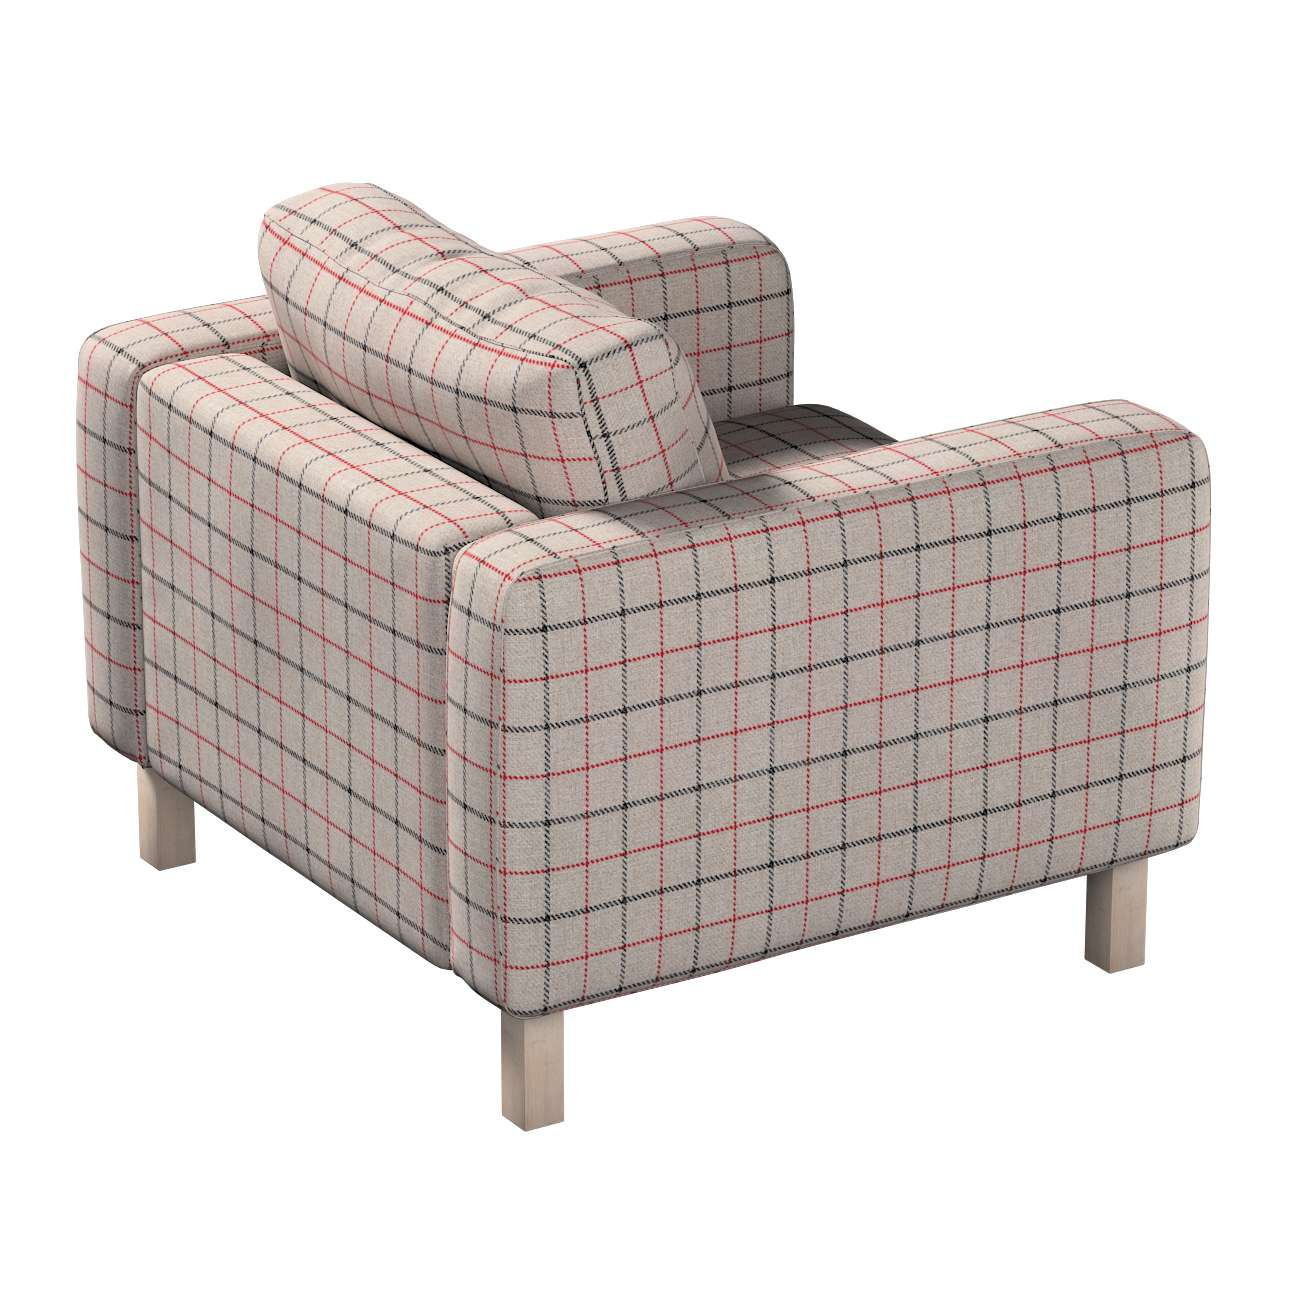 Karlstad armchair cover in collection Edinburgh, fabric: 703-13